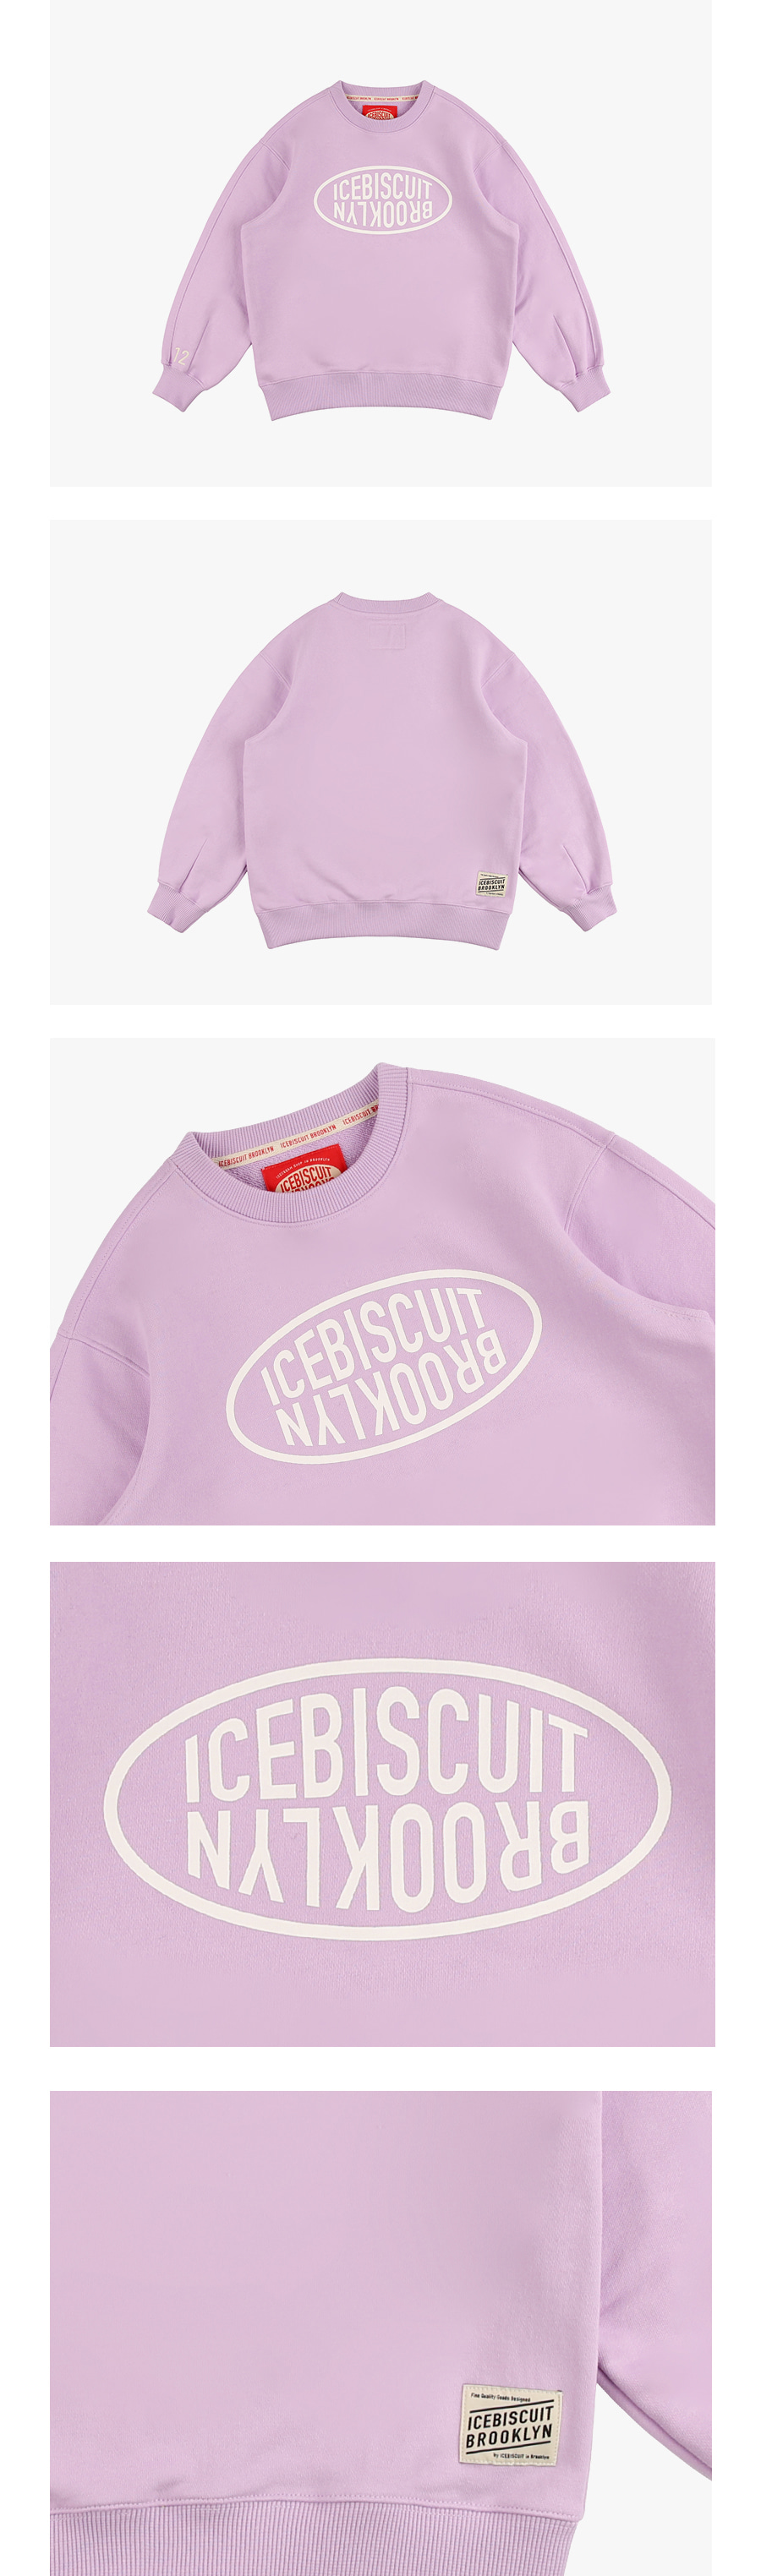 Icebiscuit symbol basic sweat shirt 상세 이미지